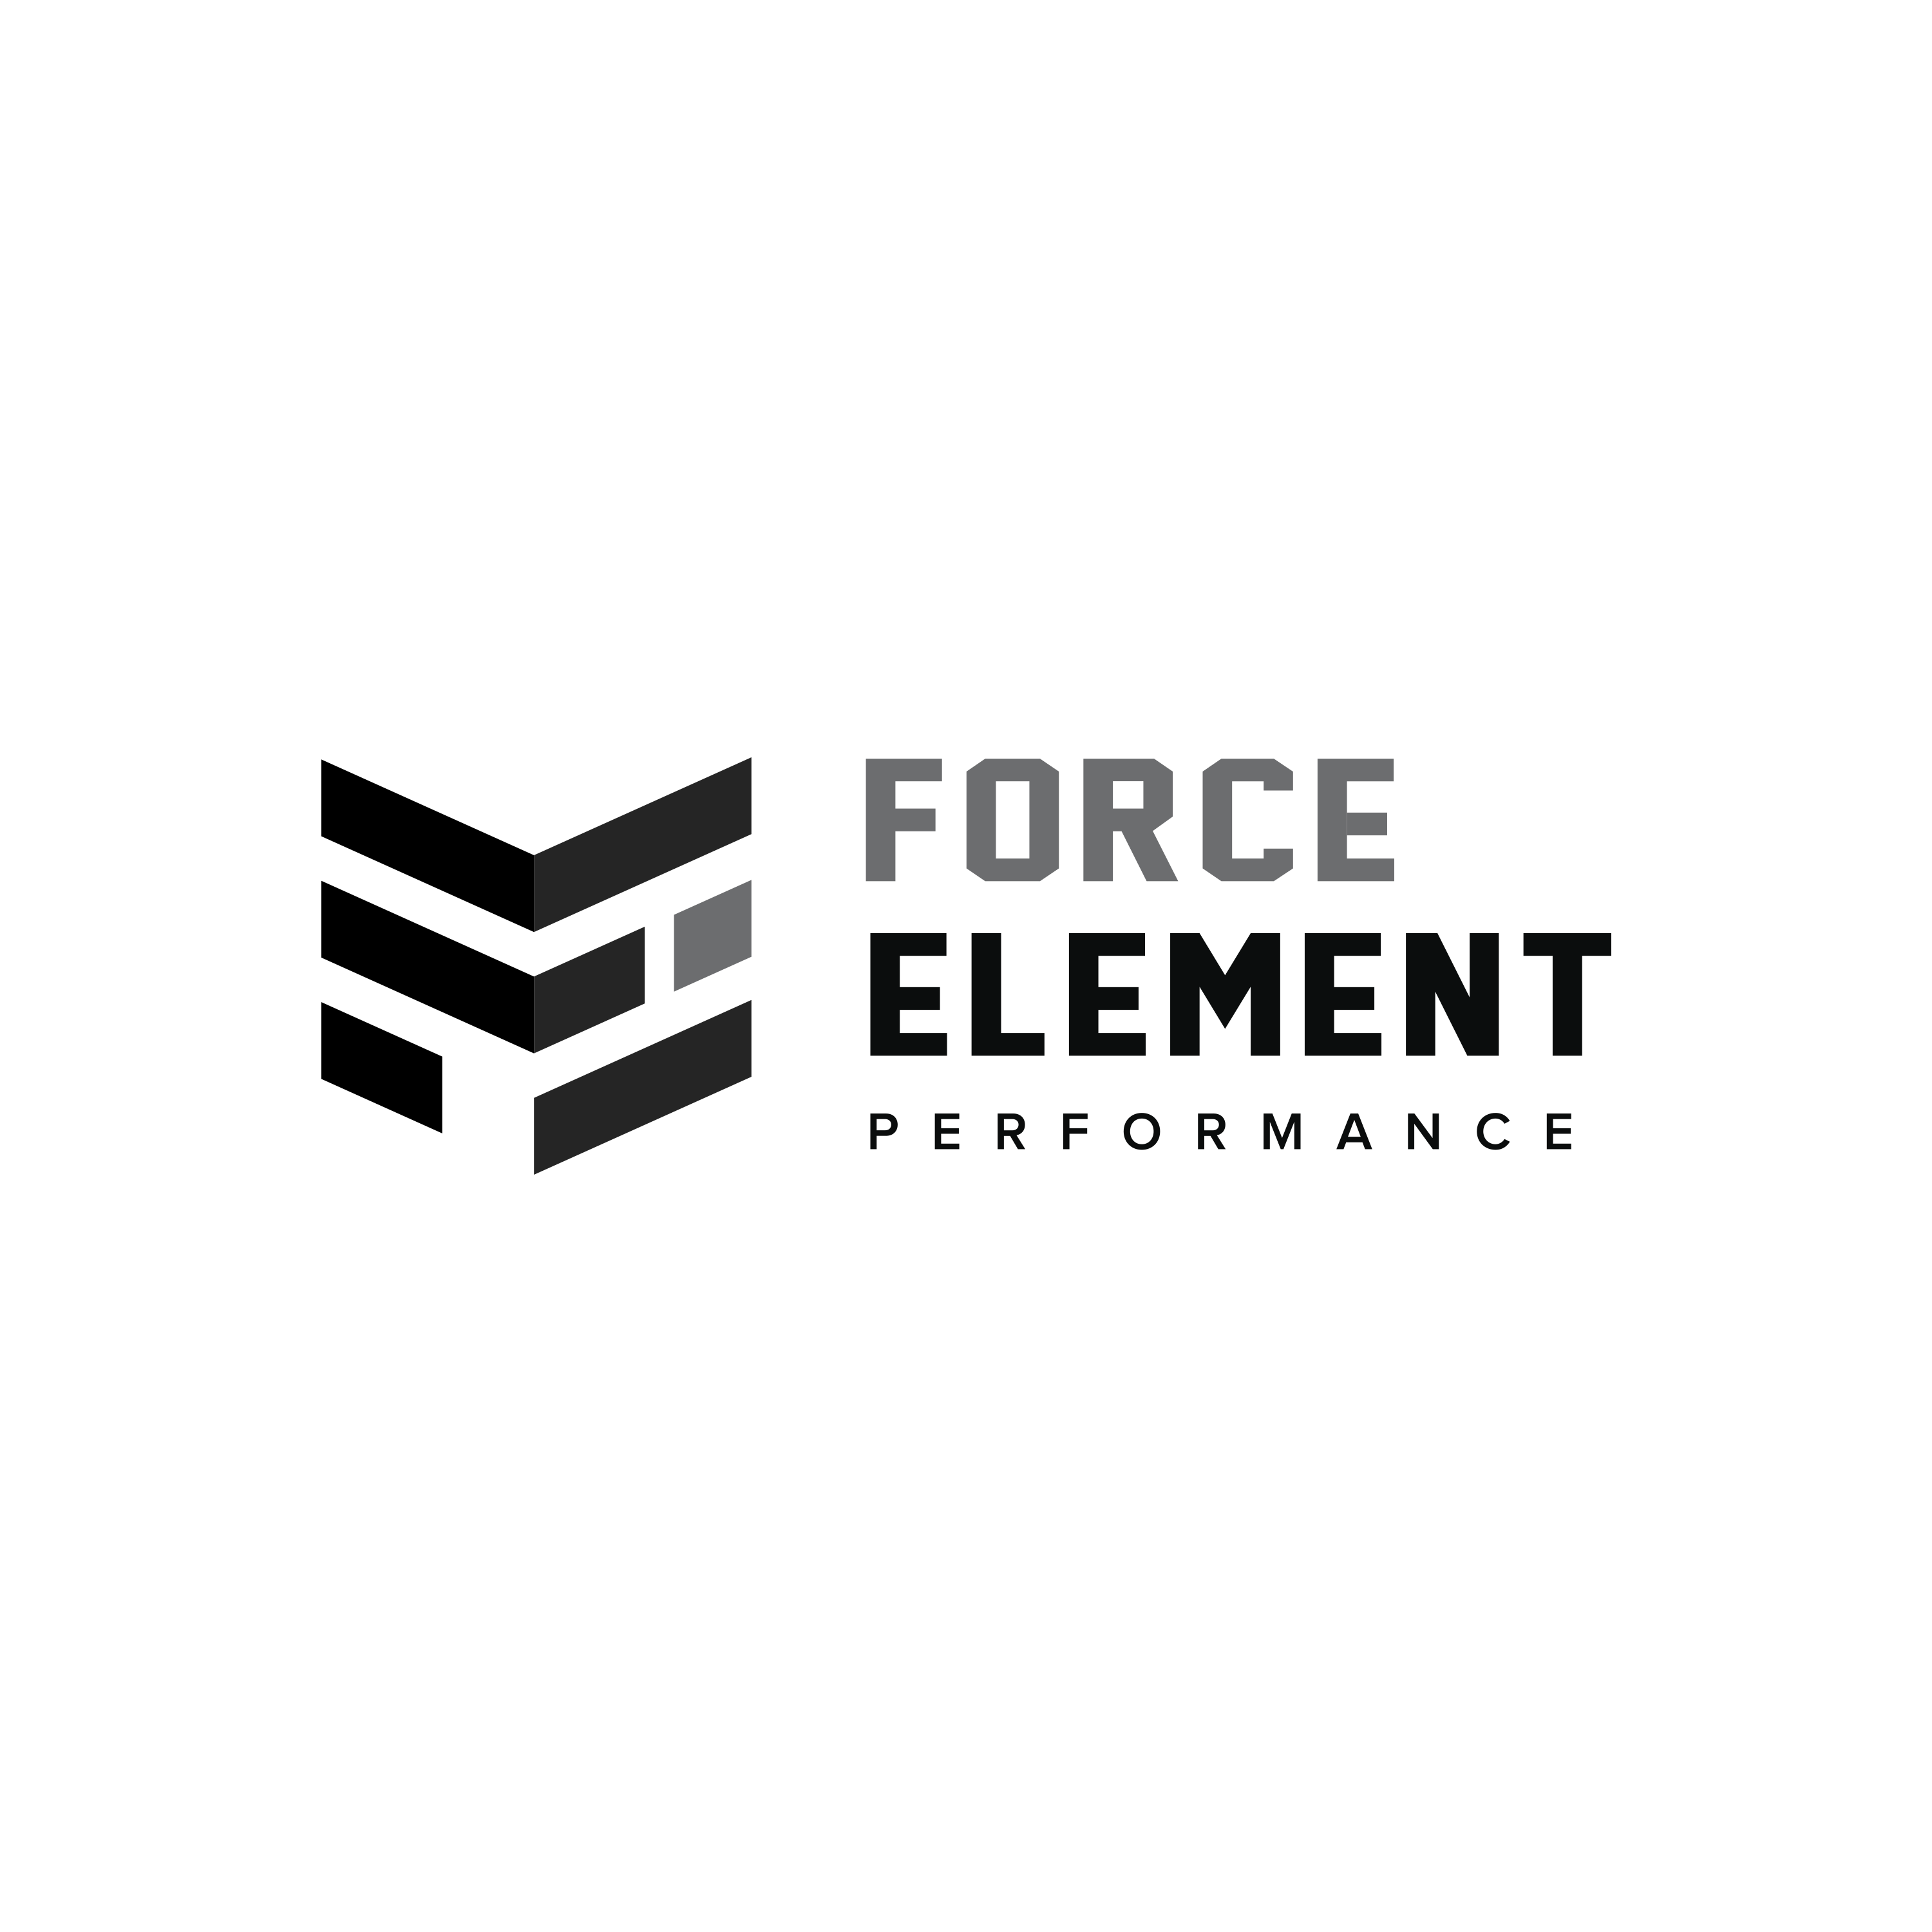 Force Element Performance